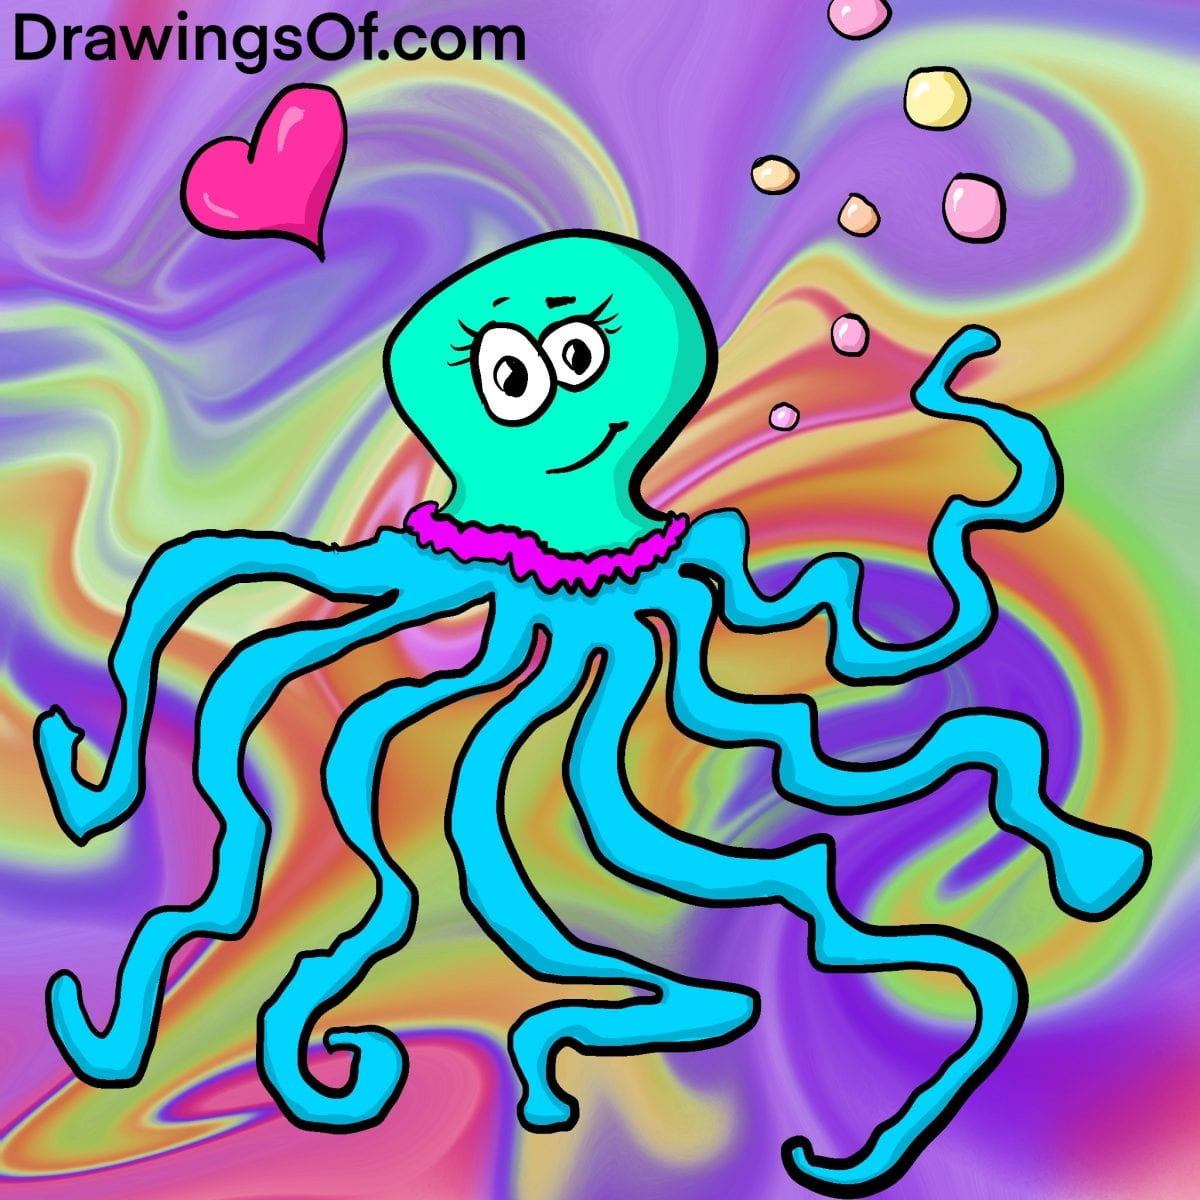 Marine life drawing: cute cartoon of jelly octopus